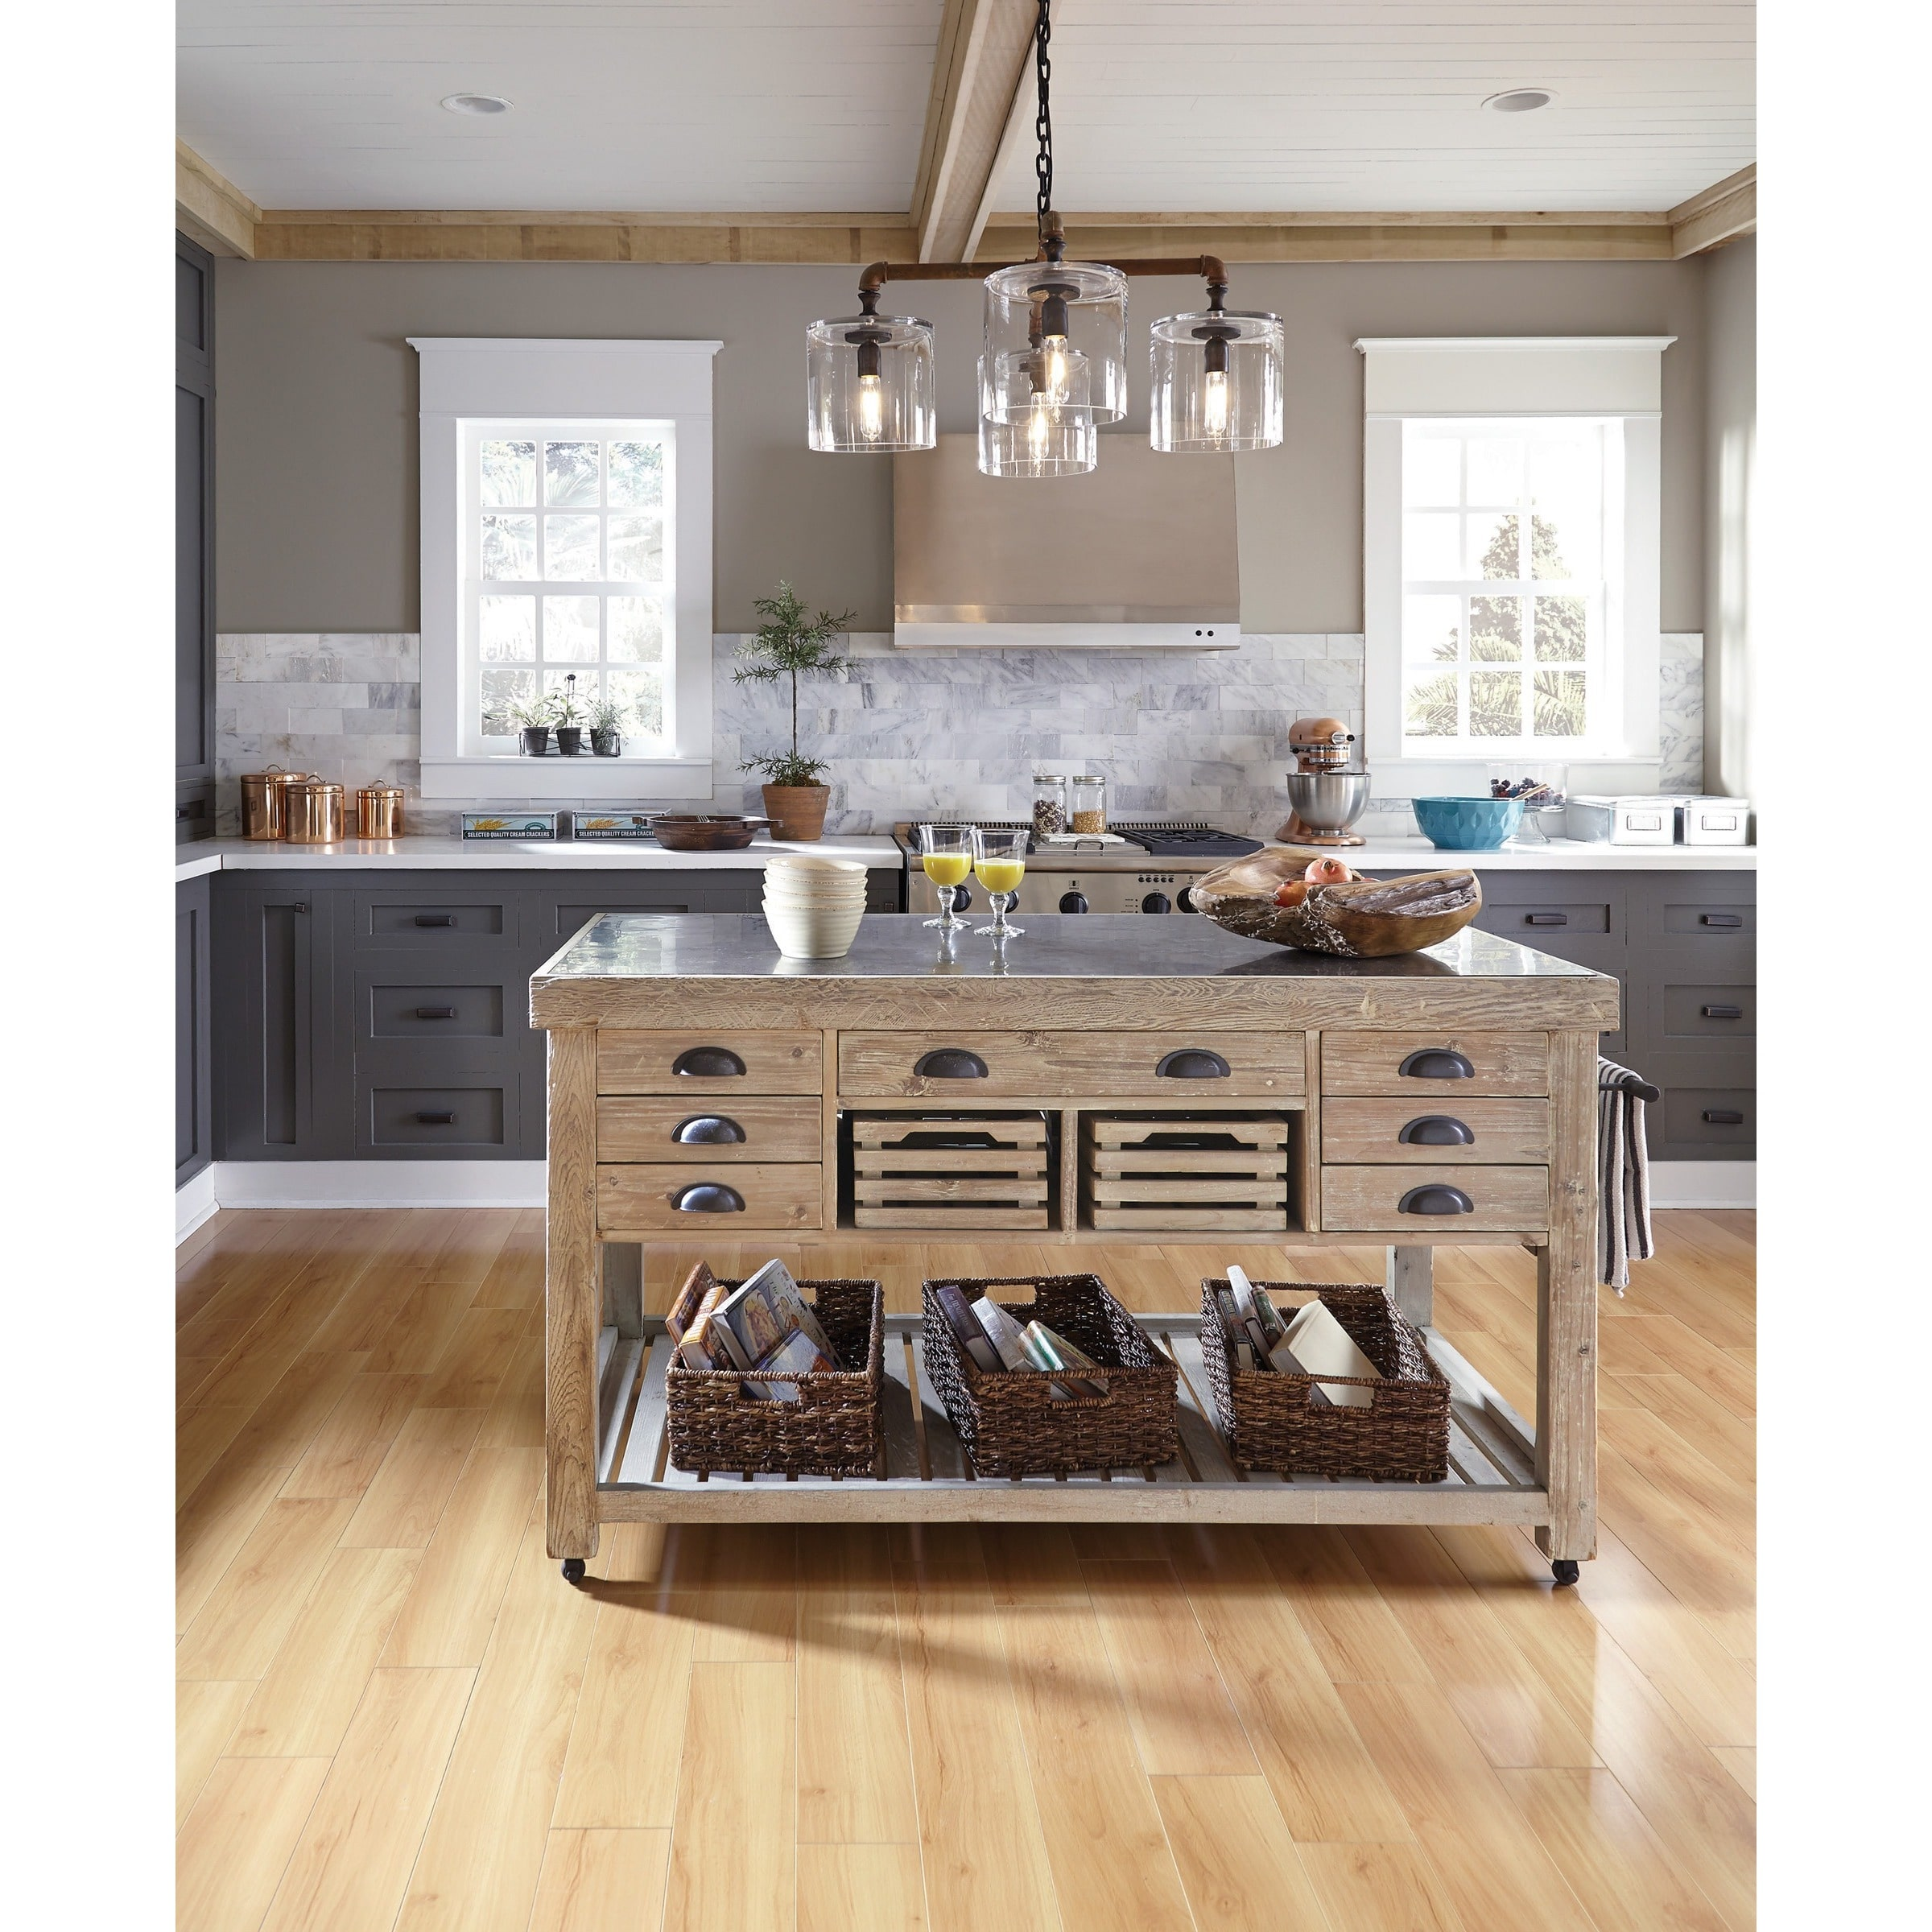 Medium image of kosas home avery wood and stone 60 inch kitchen island by